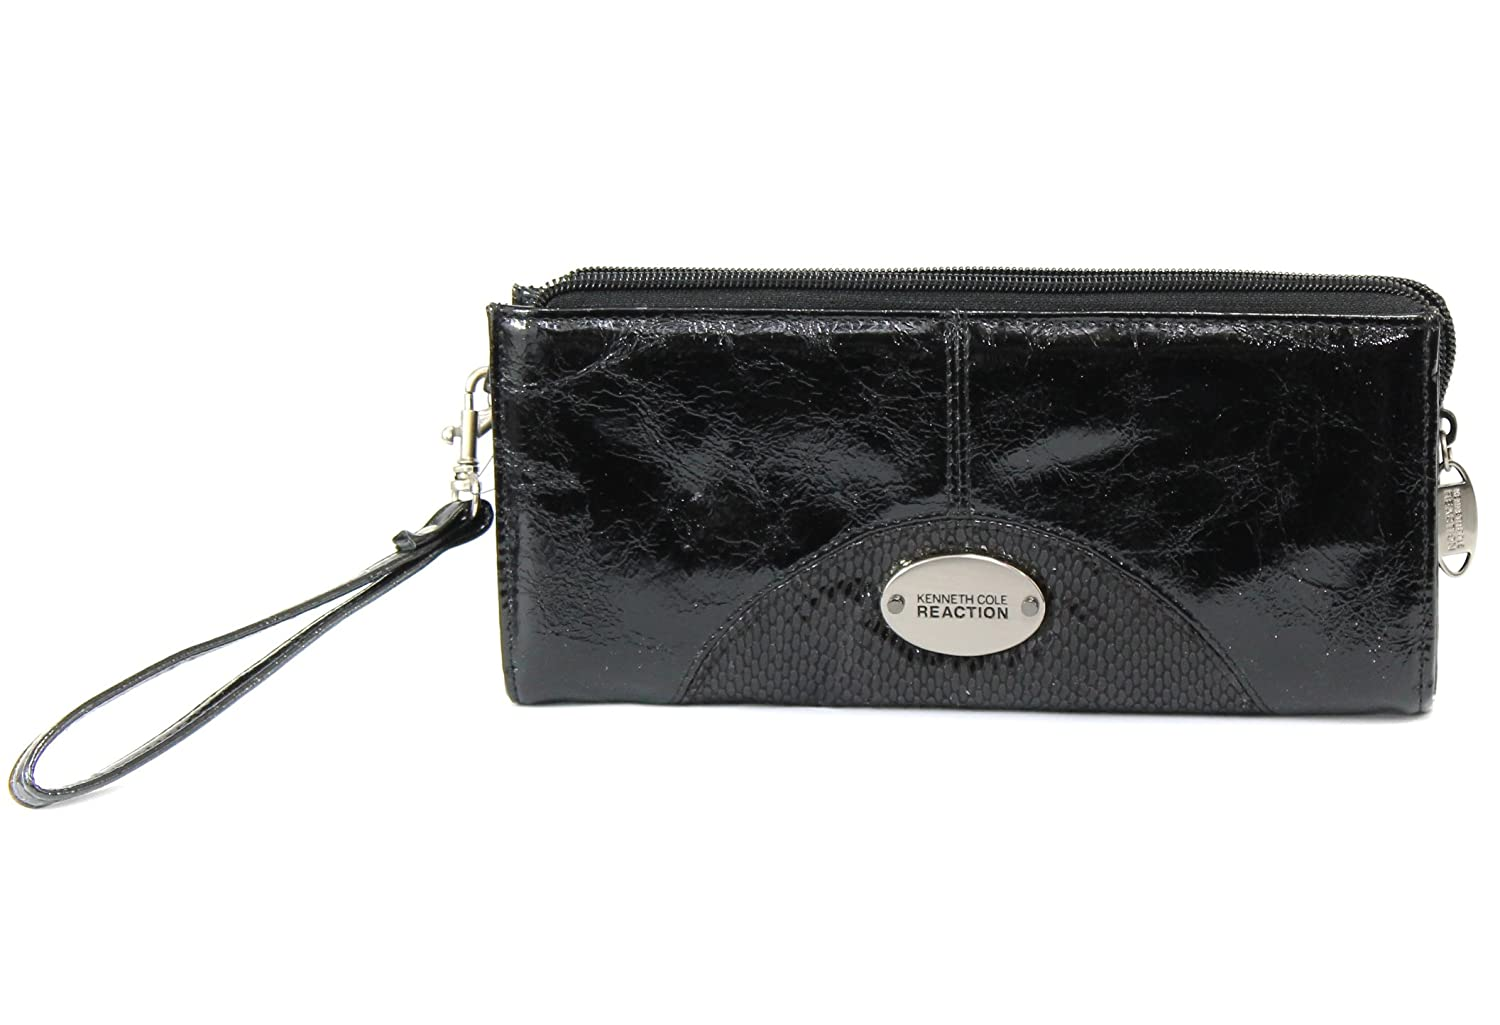 Kenneth Cole Reaction Wallet, Distressed Faux Leather Zip Clutch Mini Bag